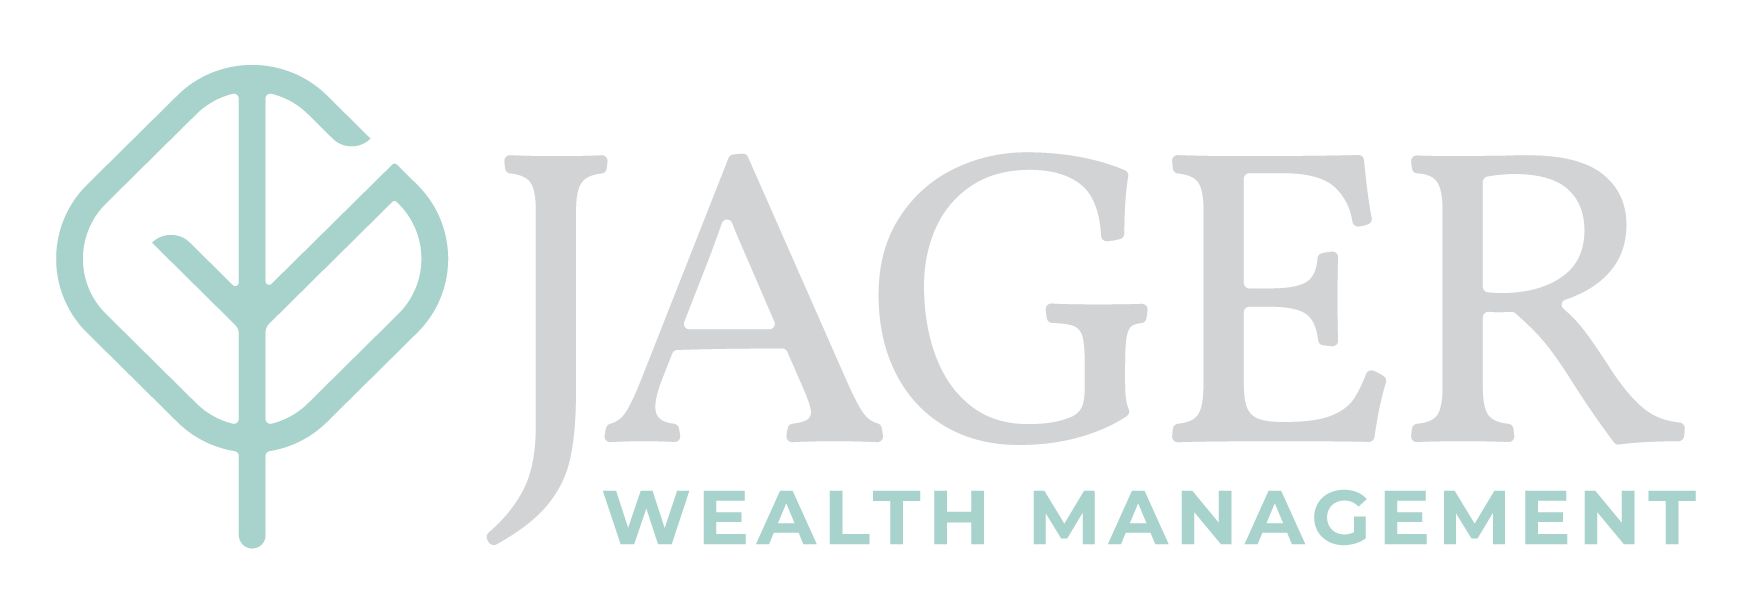 Jager Wealth Management